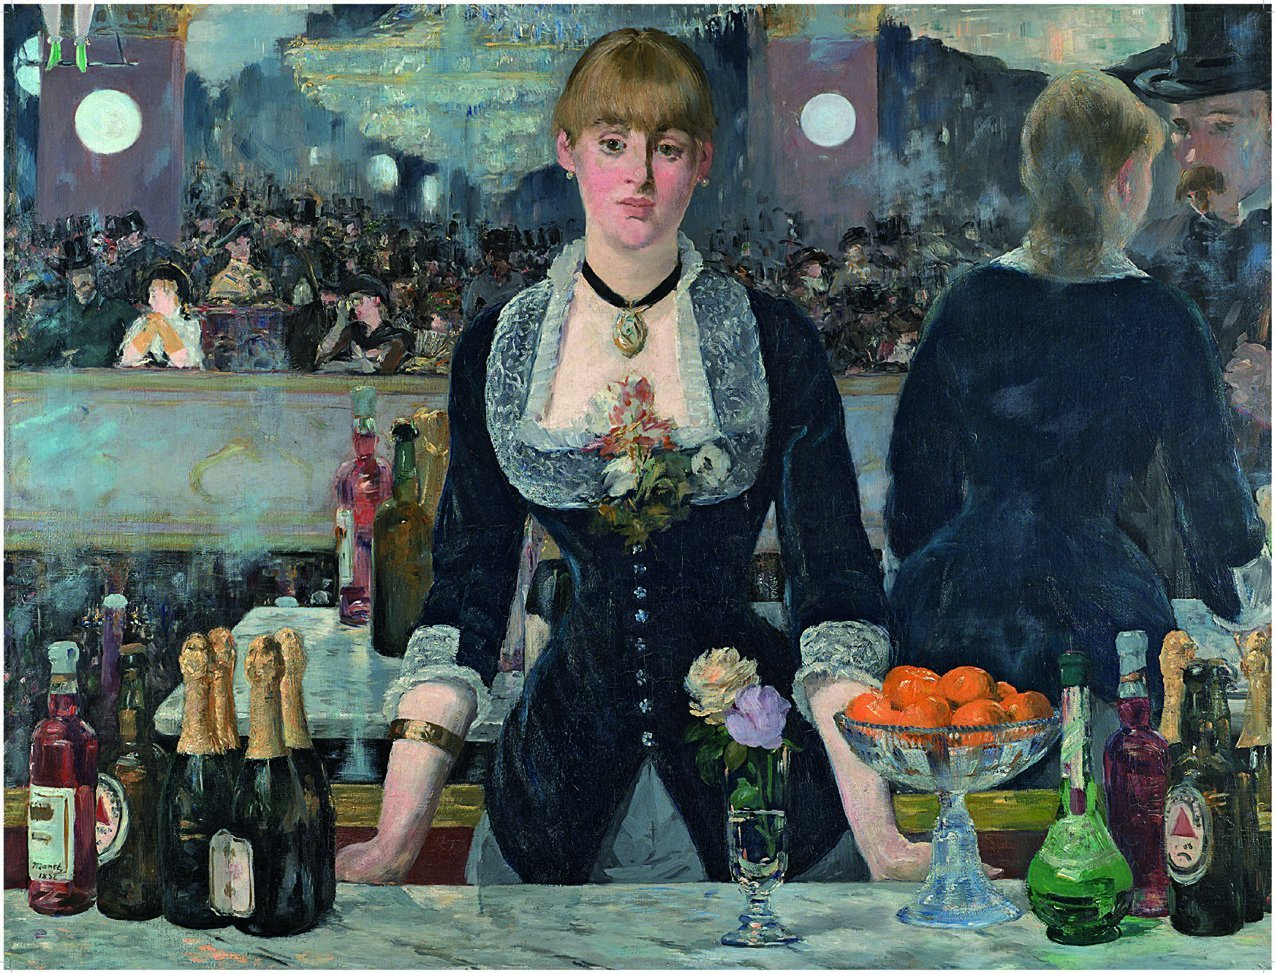 International Publishing 0901N26074B - A Bar at The Folies-Bergere, Klassische Puzzle Bild 1